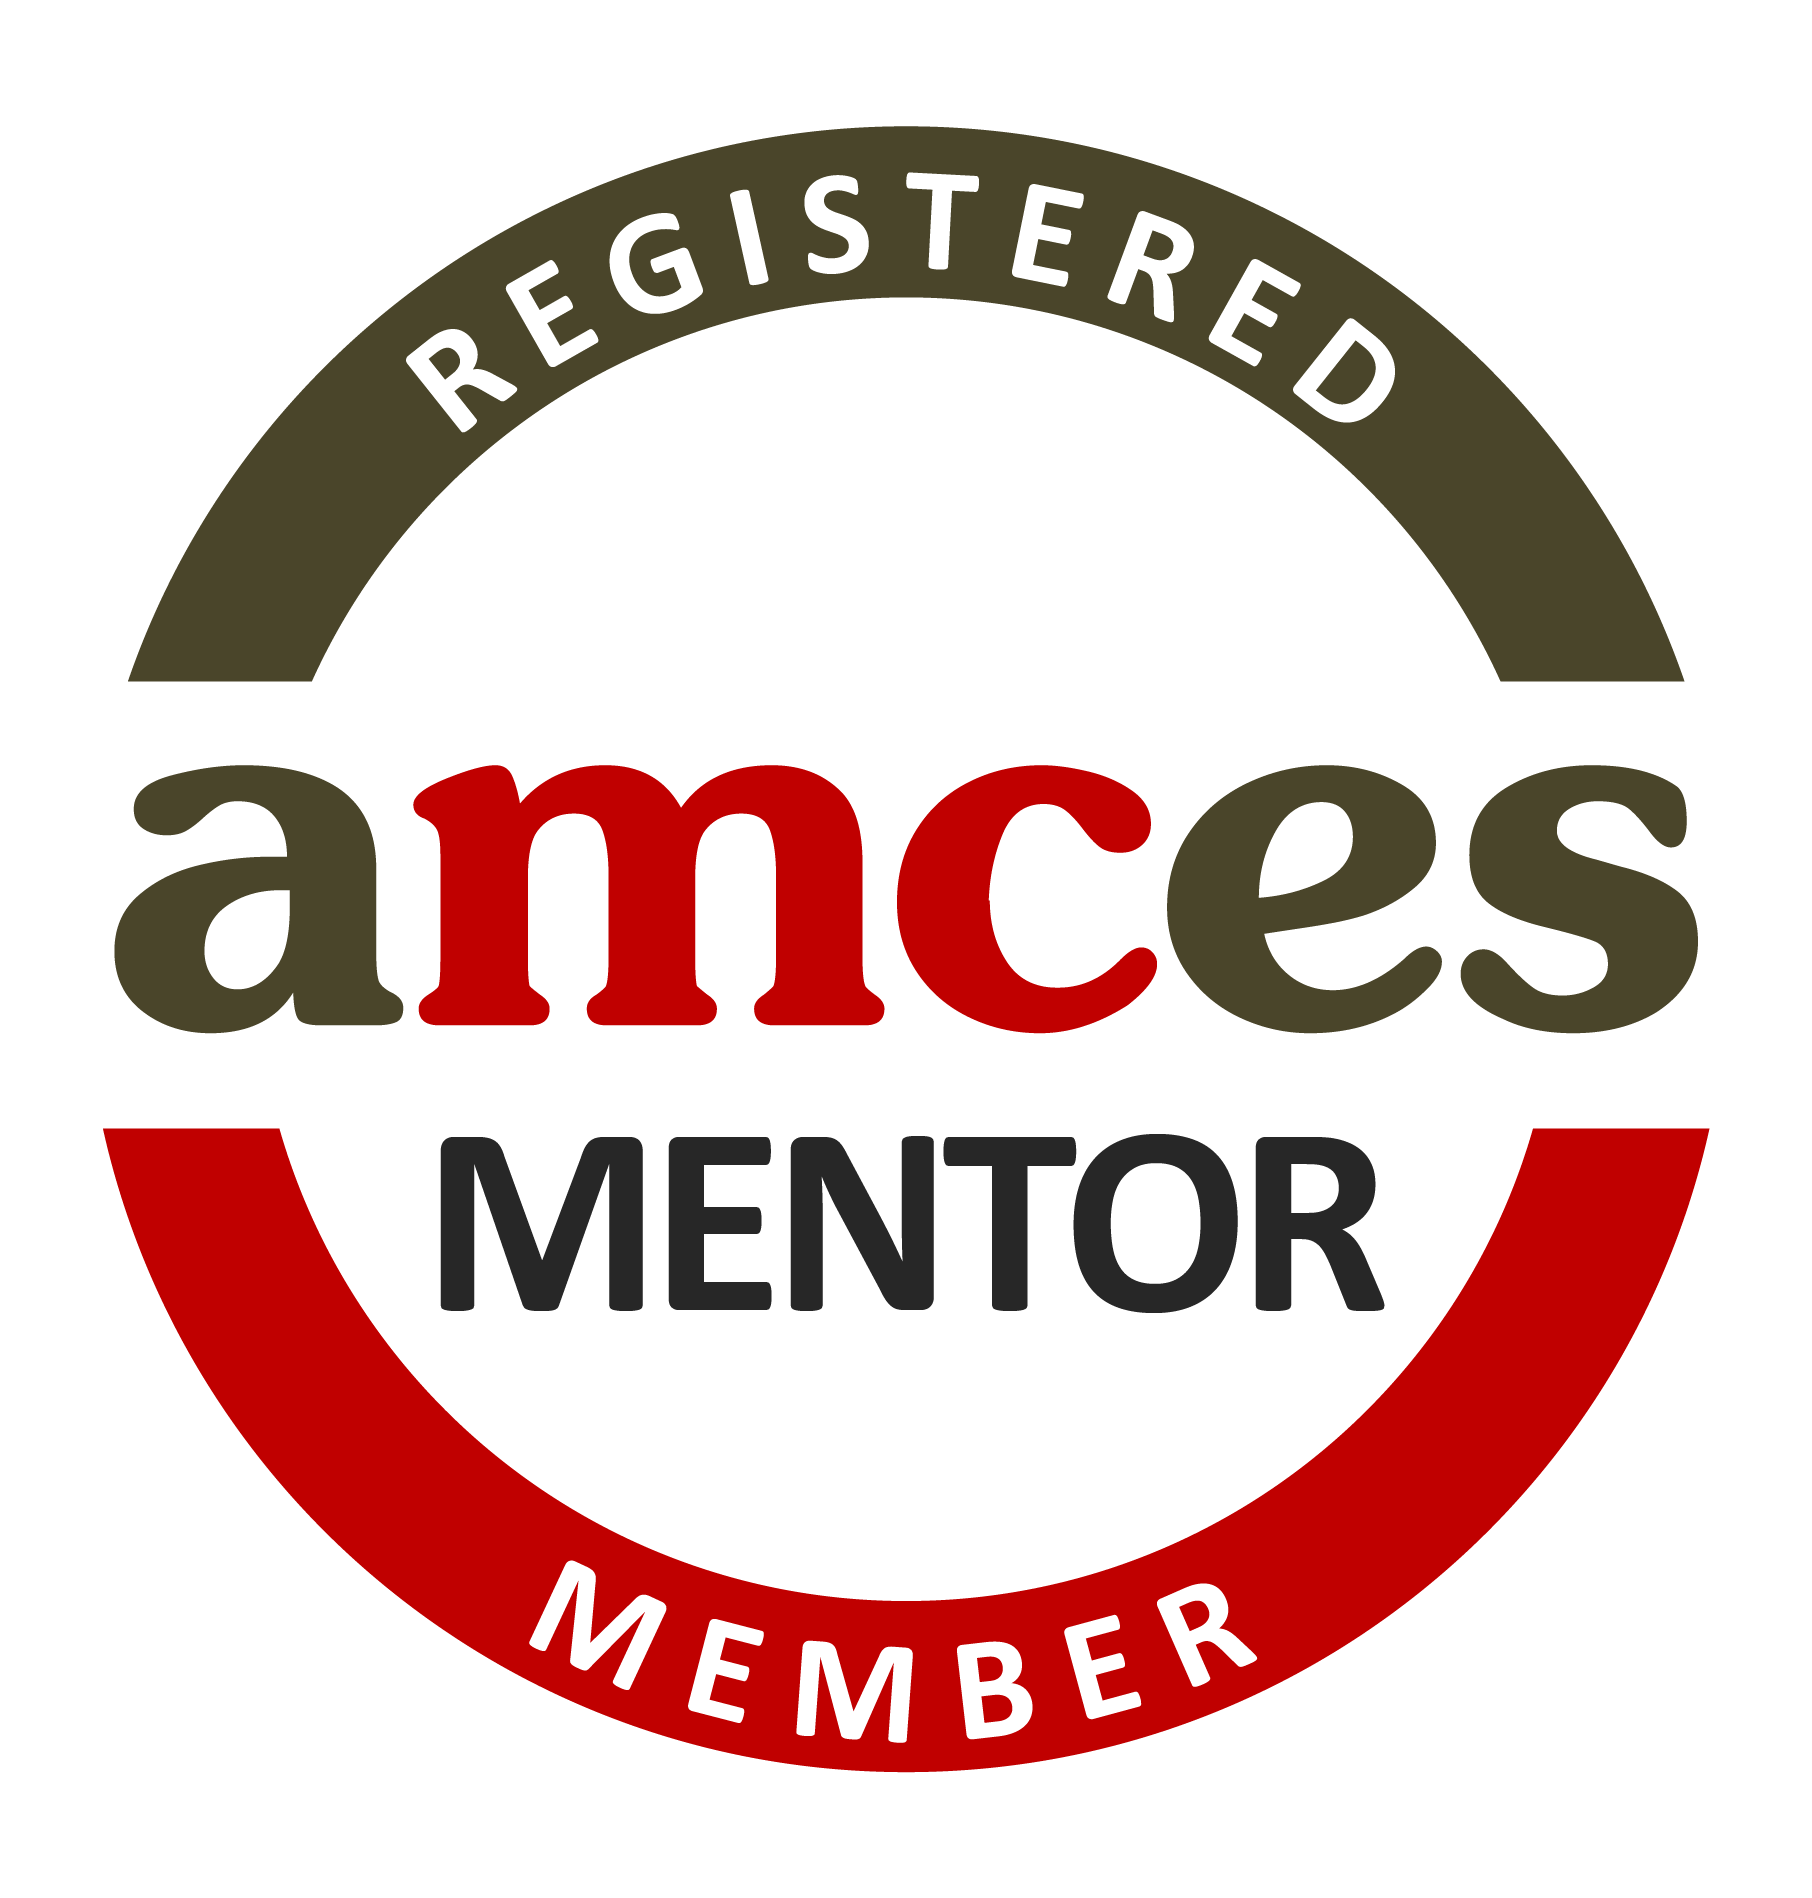 Acmes Mentor Registered